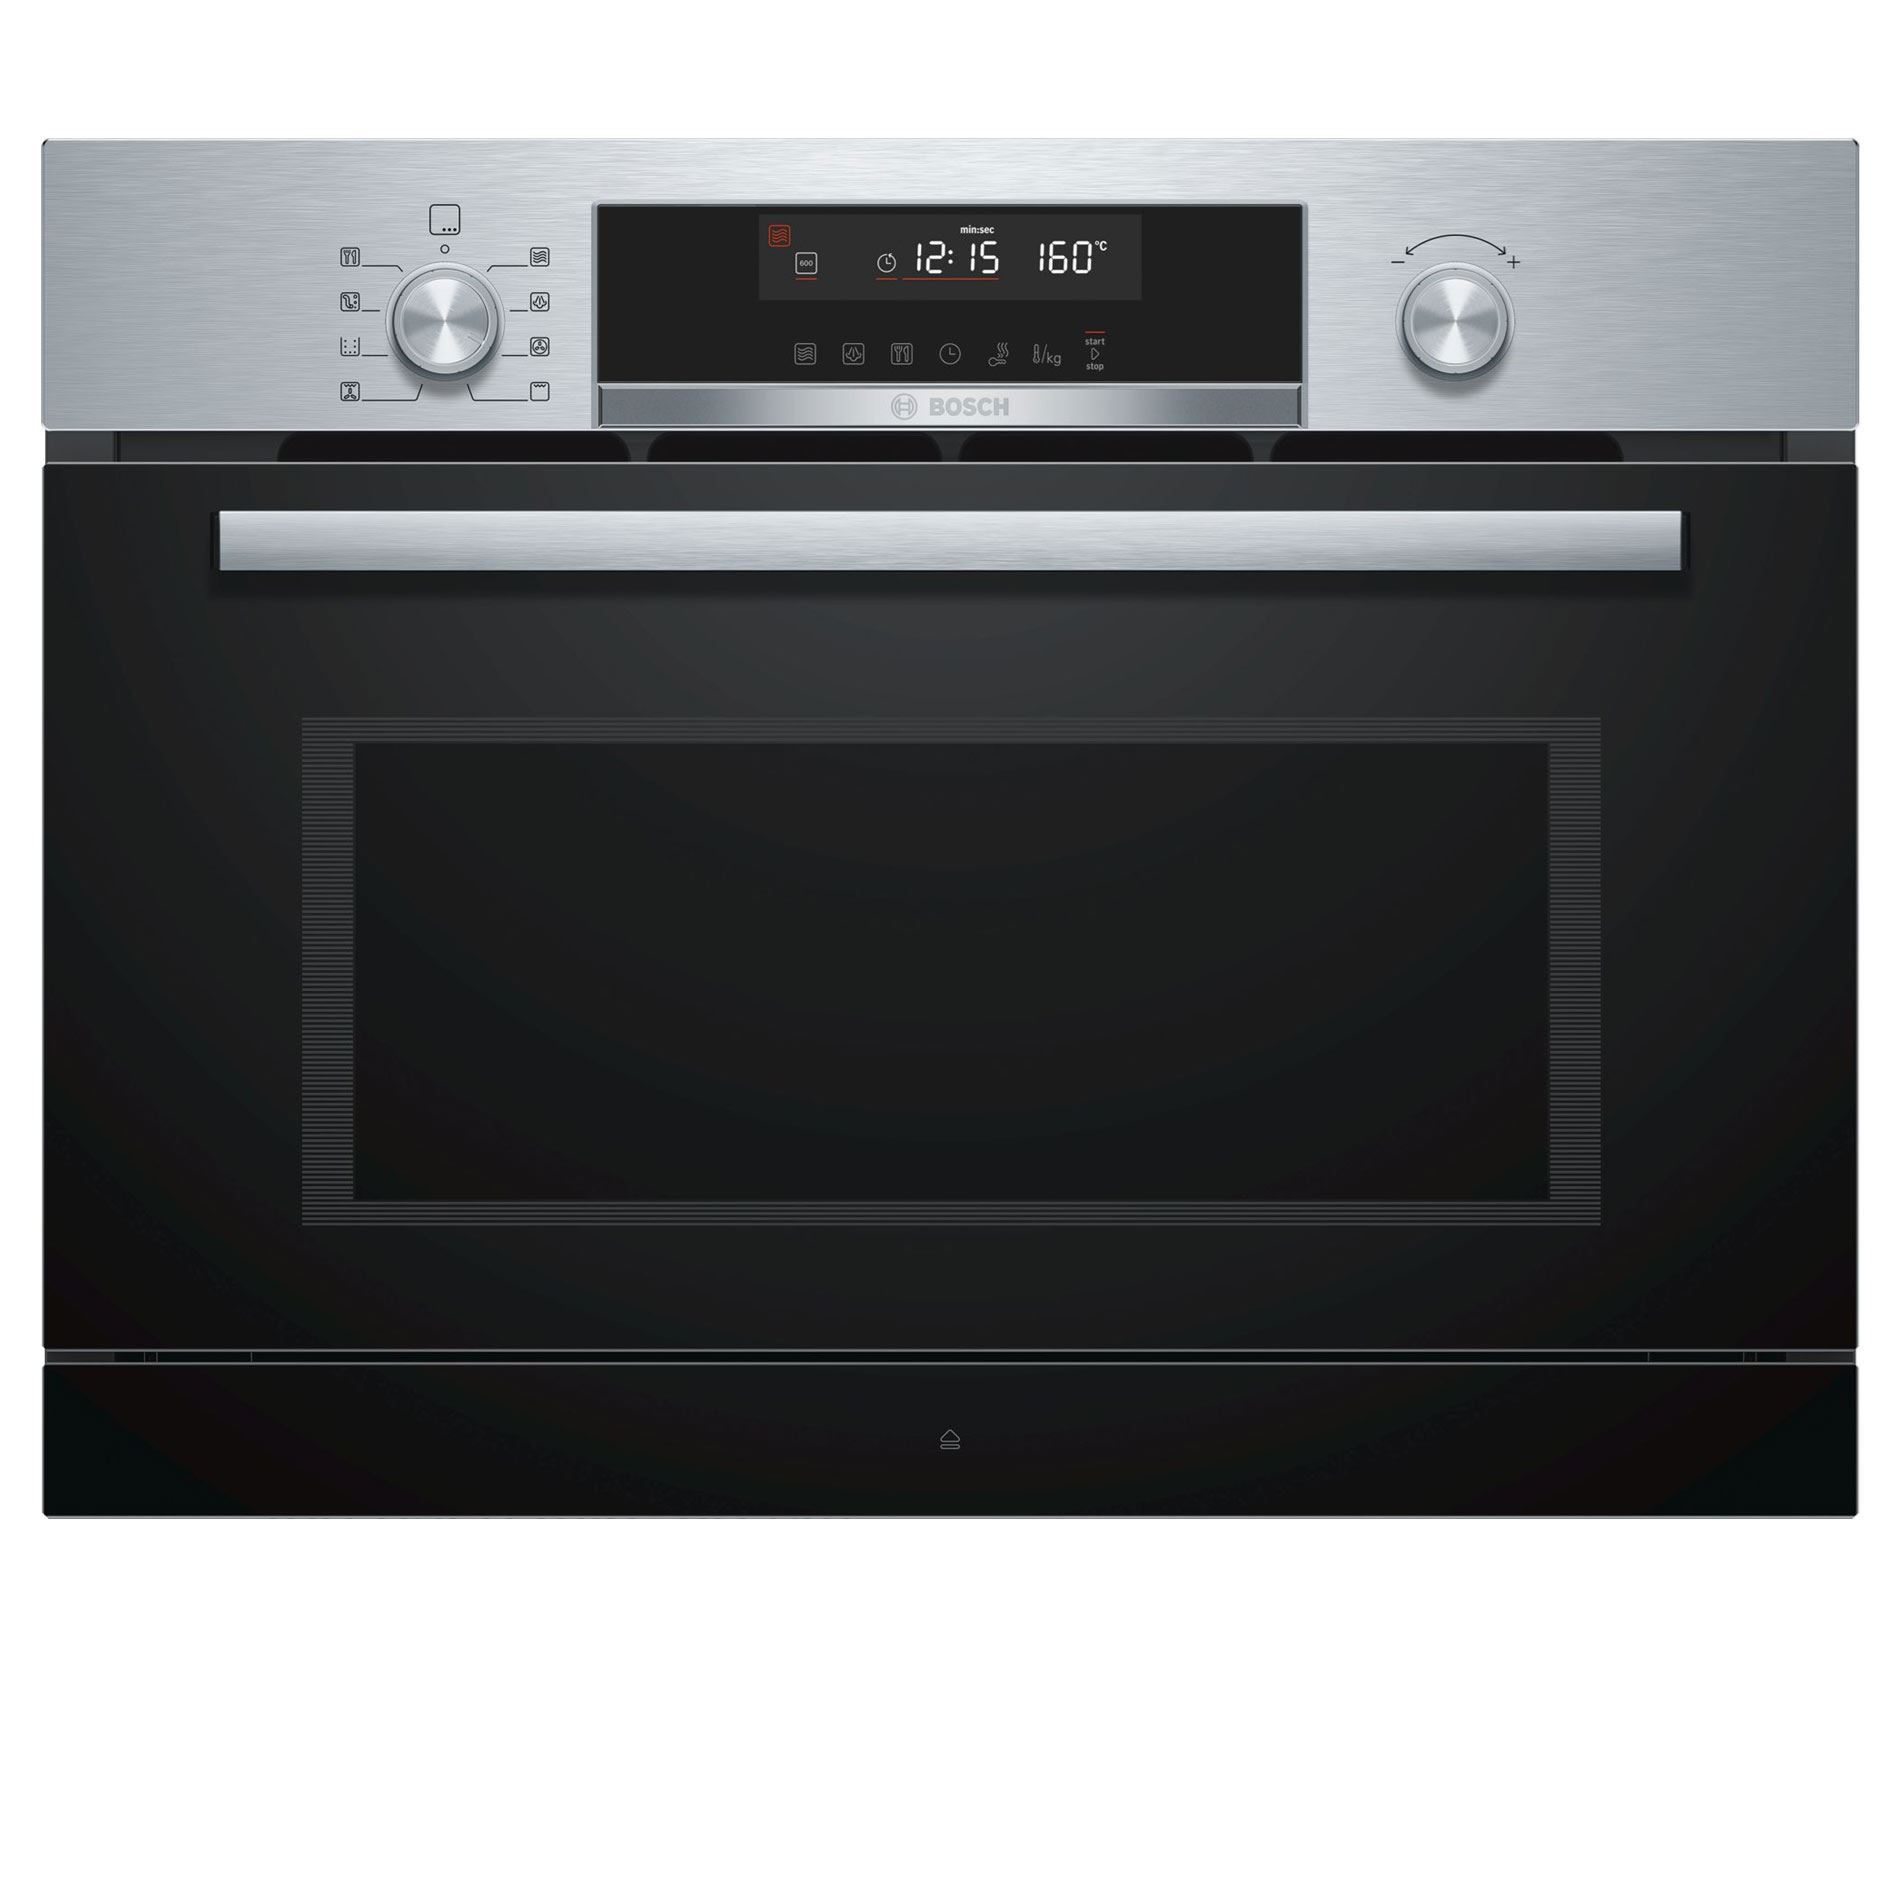 Bosch Cpa565gs0b Compact Combi Microwave Oven Appliance